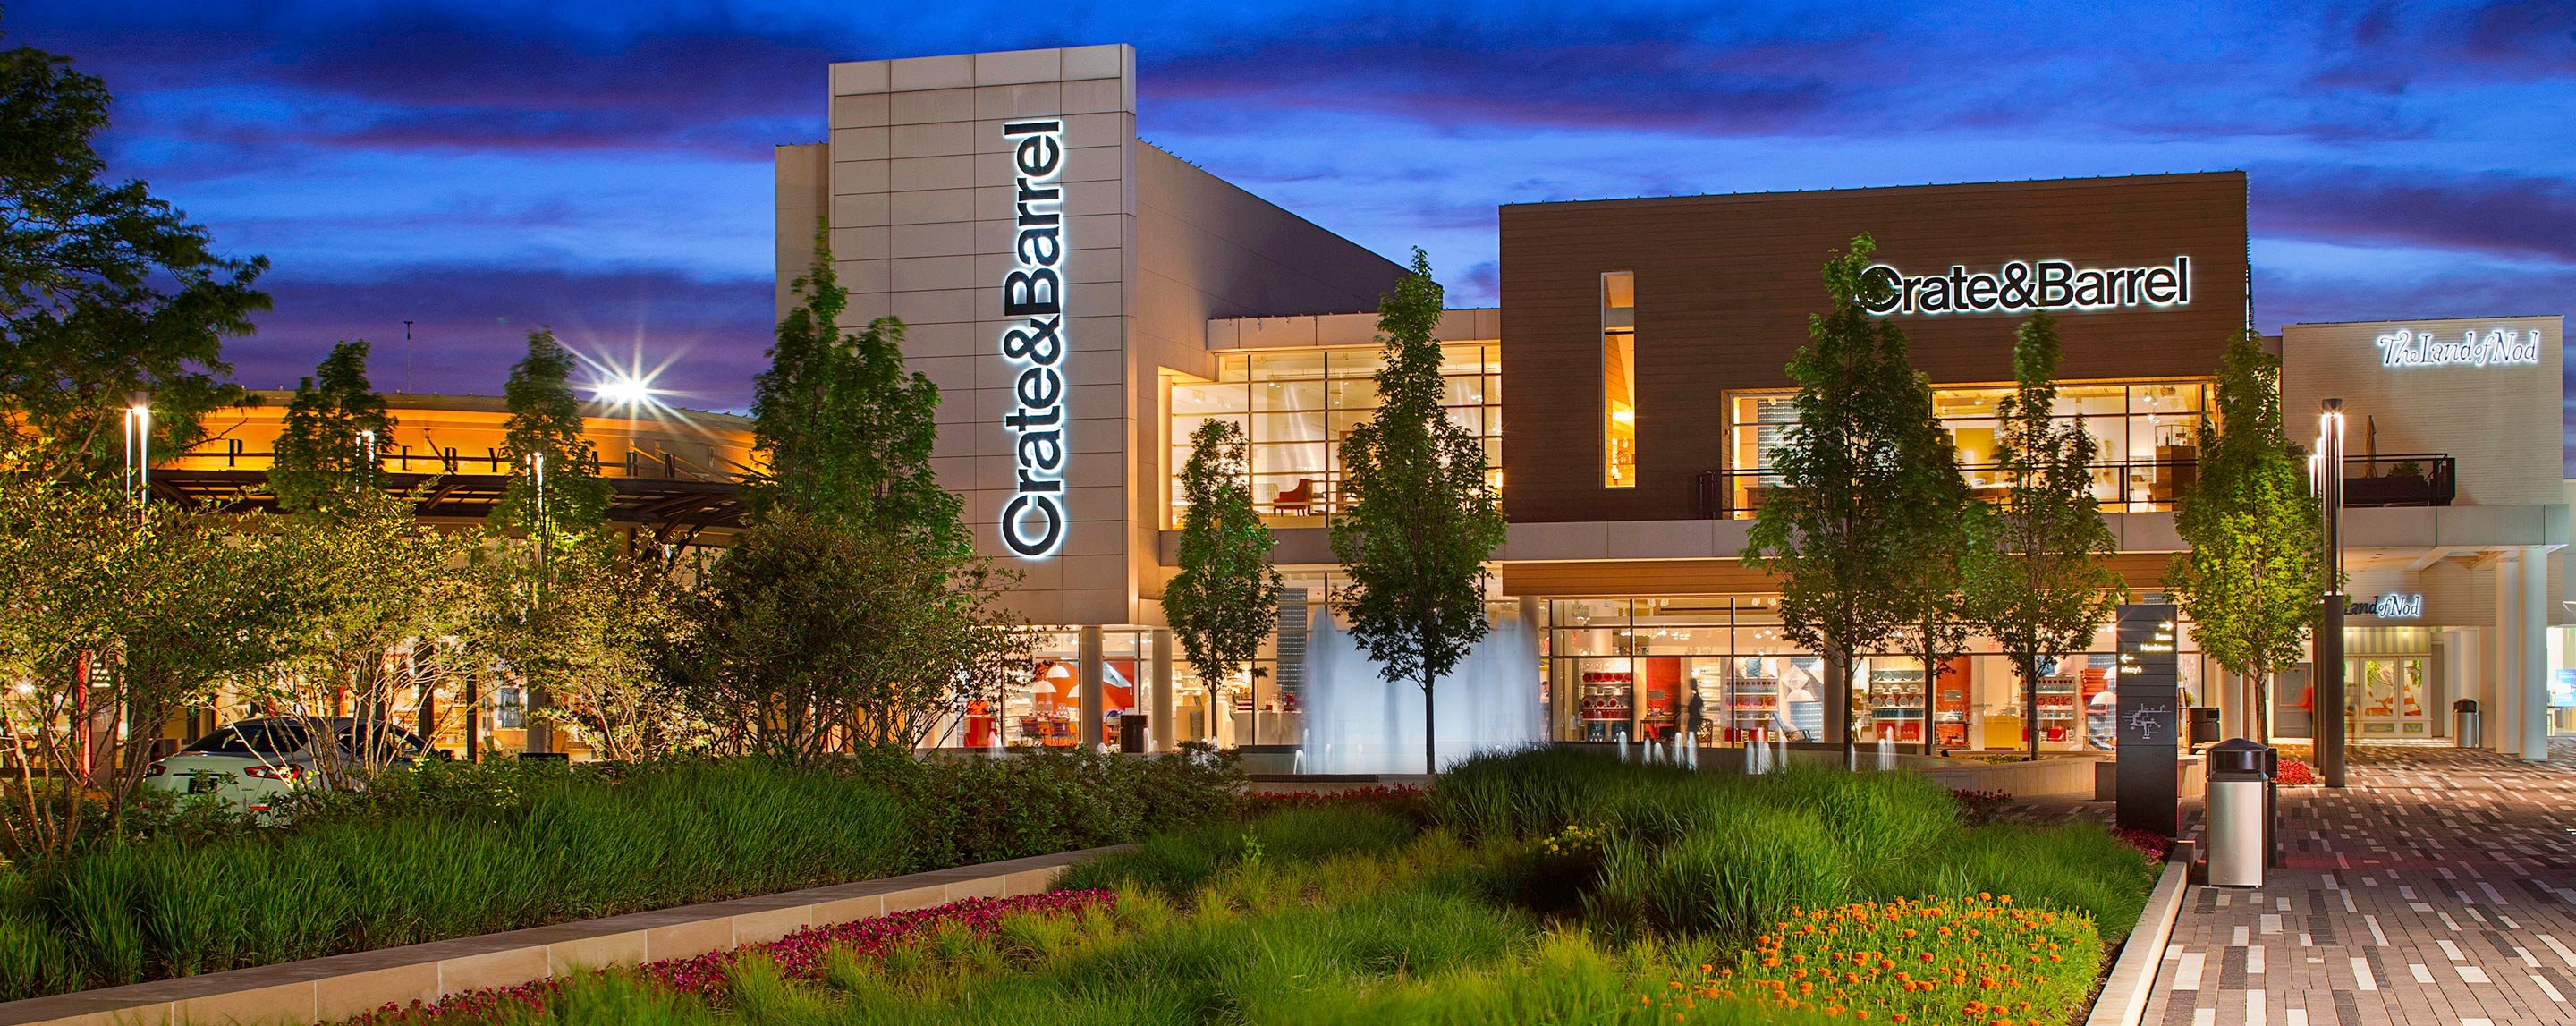 At dusk, Oakbrook Center has beautiful plants and trees in the common area in front of a Crate and Barrel store.